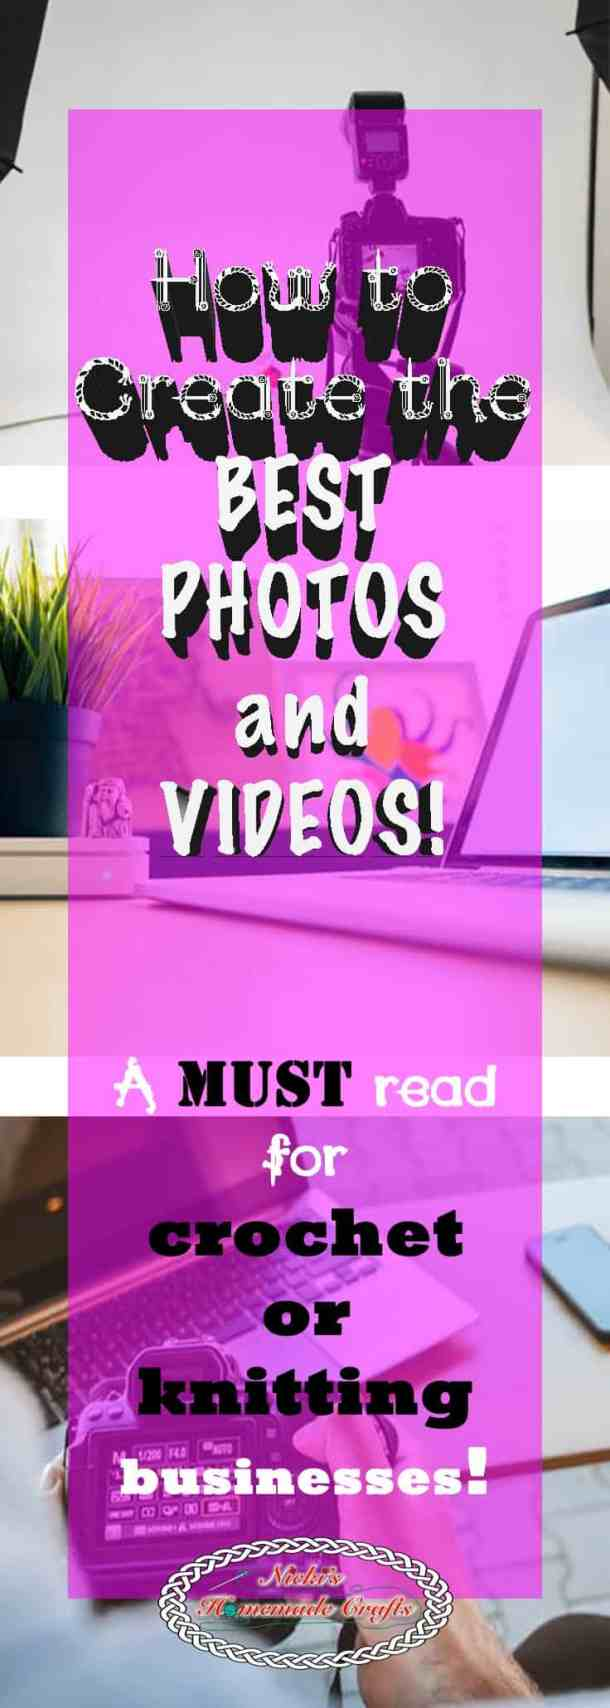 How to create the Best Photos and Videos for Crochet and Knitting Business - A Must Read - Nicki's Homemade Crafts